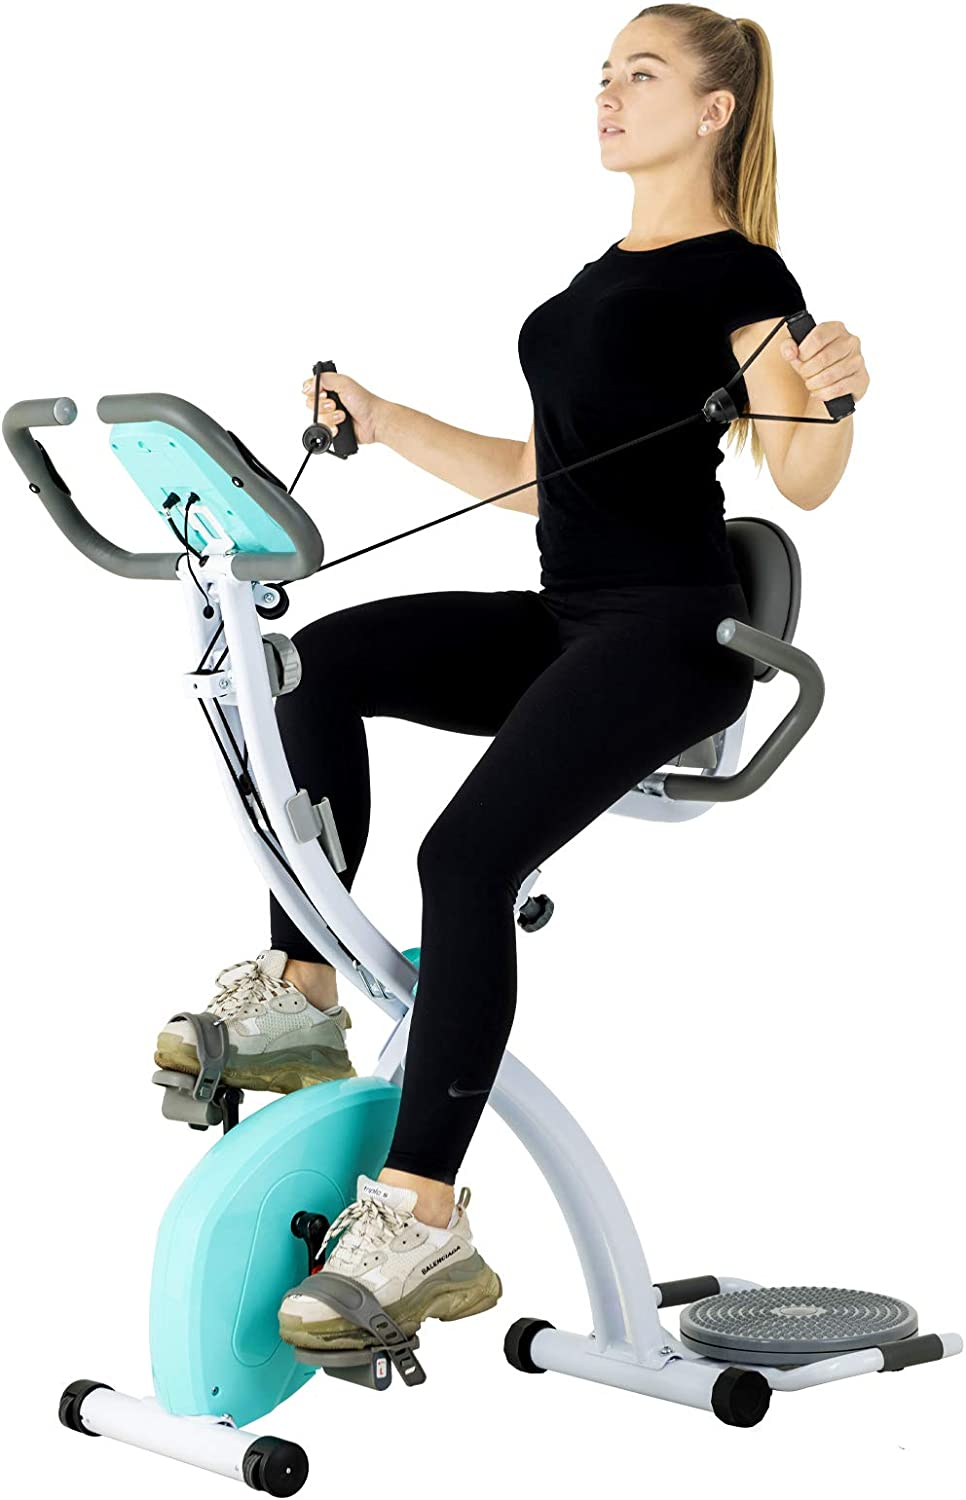 Murtisol Stationary Bike – Folding Indoor Exercise Bike with Twister Plate, Arm Resistance Bands, Extra Large Adjustable Seat and Heart Monitor – Perfect Home Exercise Machine for Cardio, Three Colors